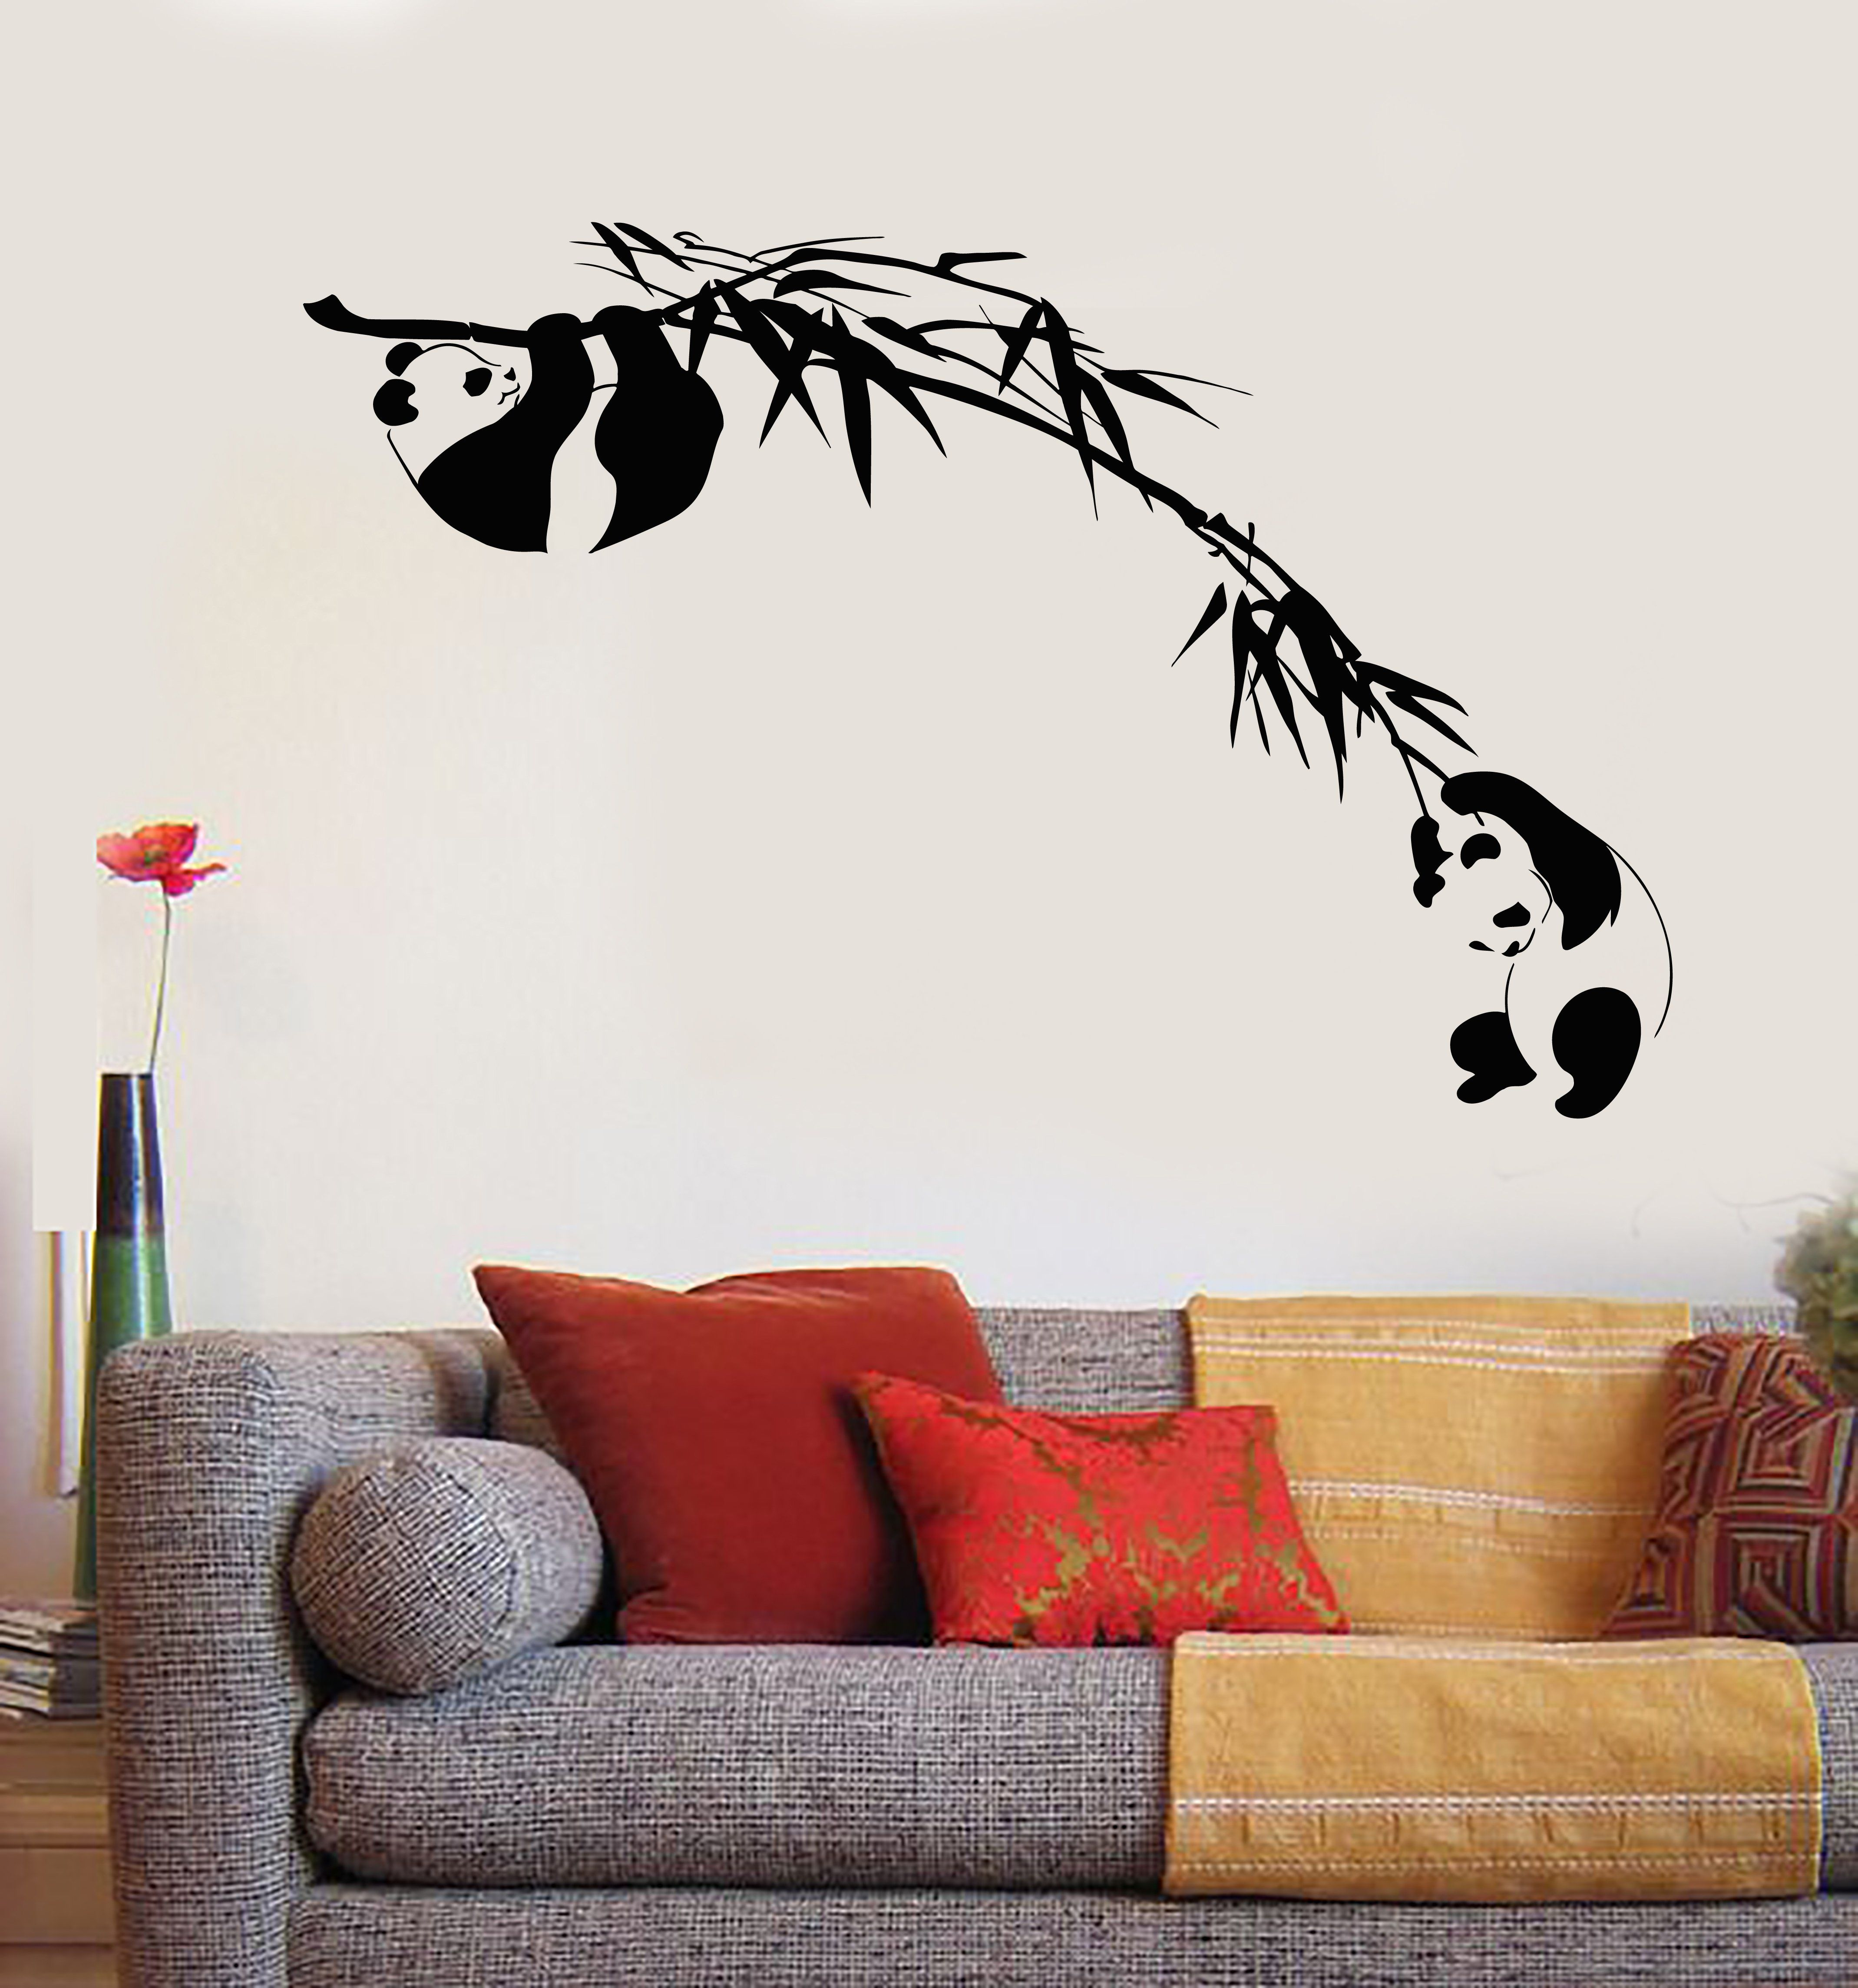 Vinyl Wall Decal Branch Bamboo Tree Panda Asian Animal Stickers